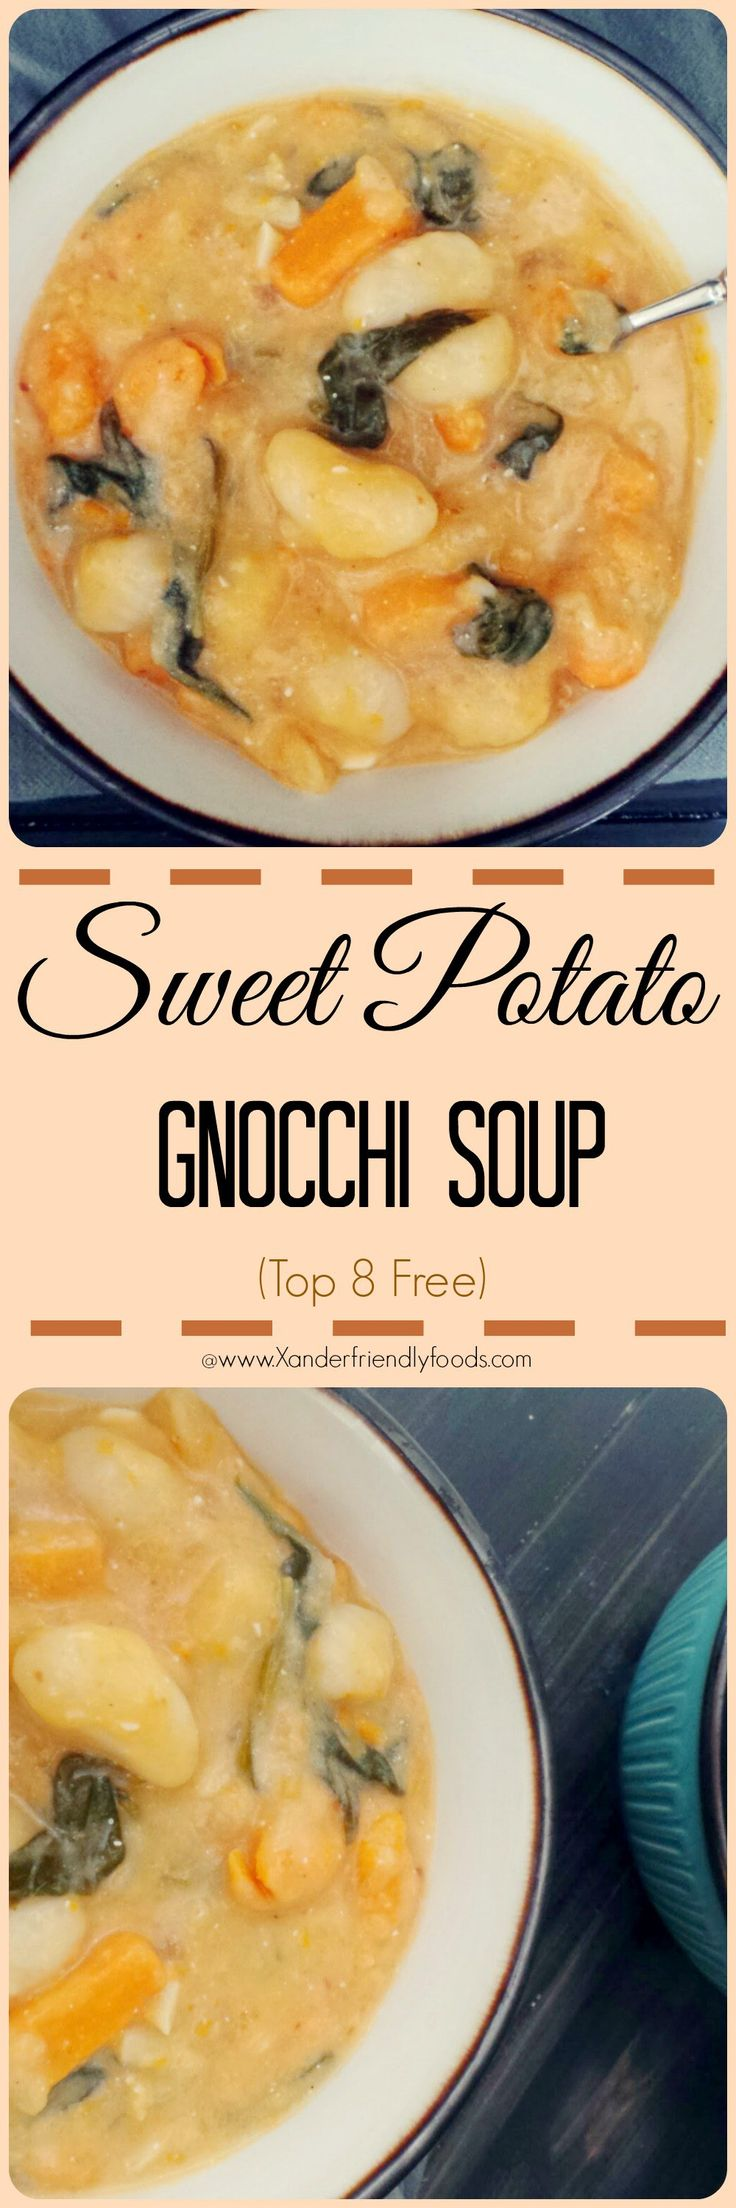 Sweet Potato Gnocchi Soup, homemade, vegan & gluten free. Rich & creamy, comforting & so delicious. Kids love it too!